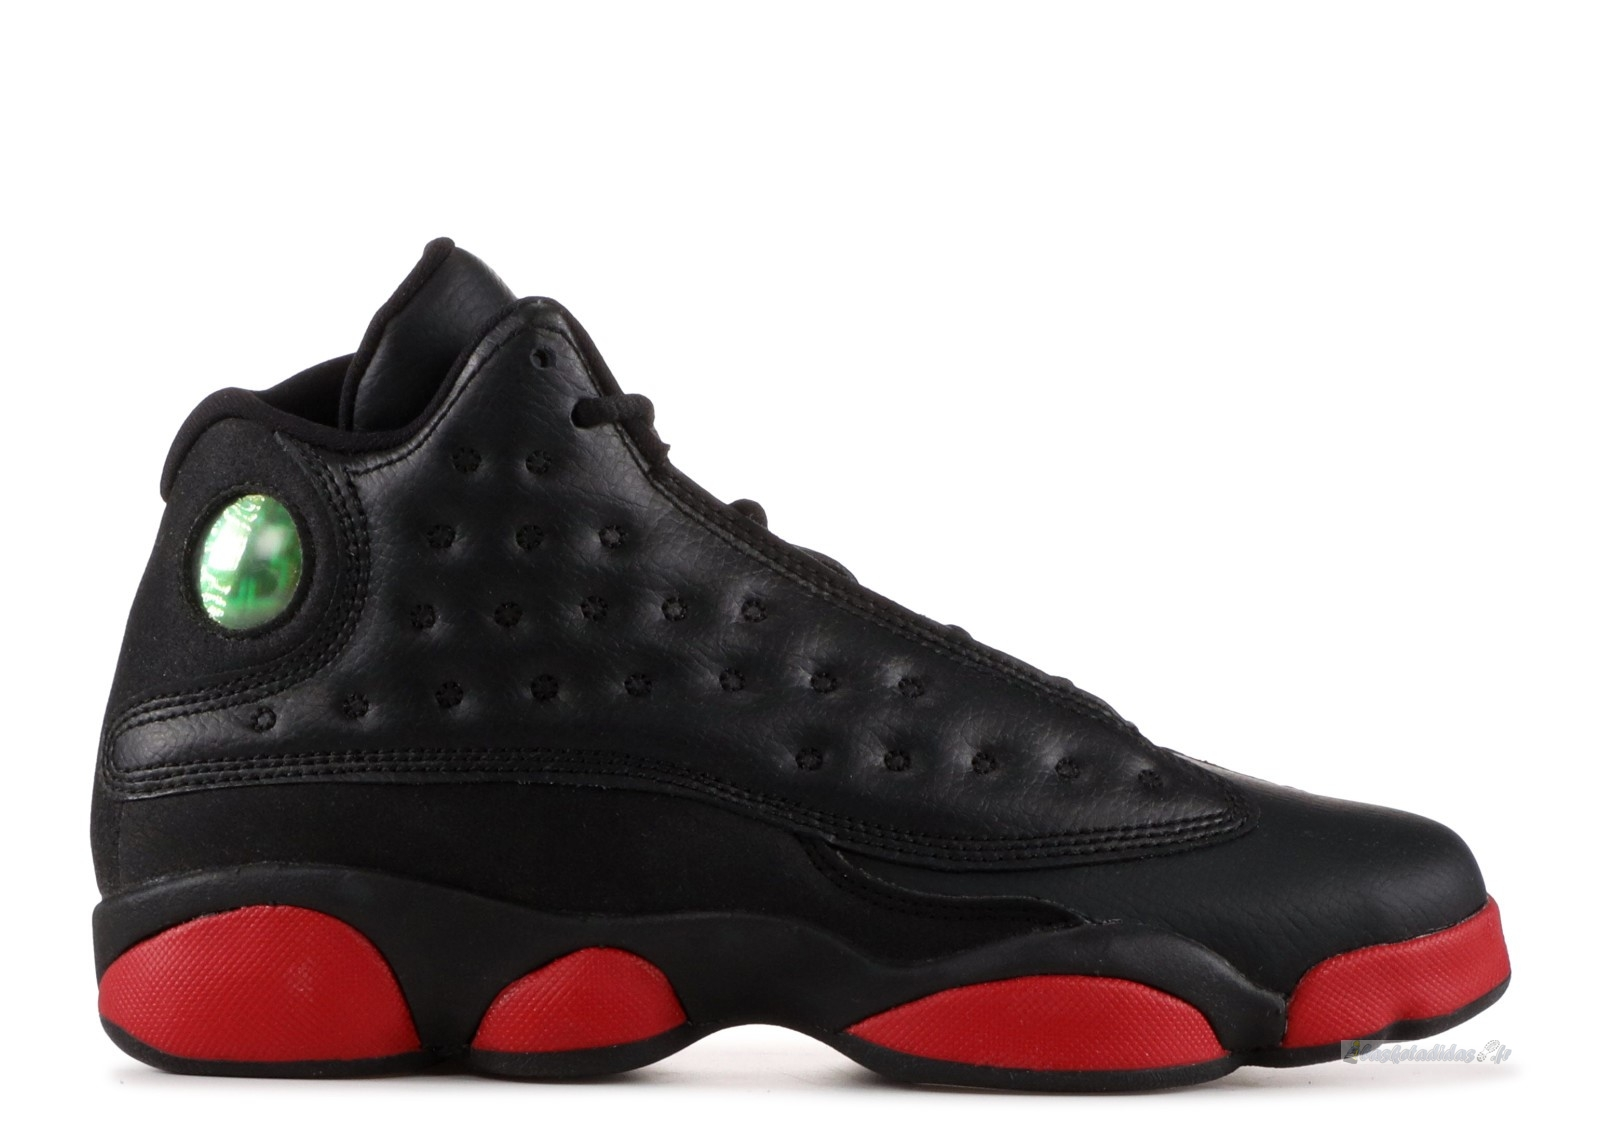 "Chaussure de Basket Air Jordan 13 Retro Bg (Gs) ""Dirty Bred"" Noir Rouge (414574-033)"